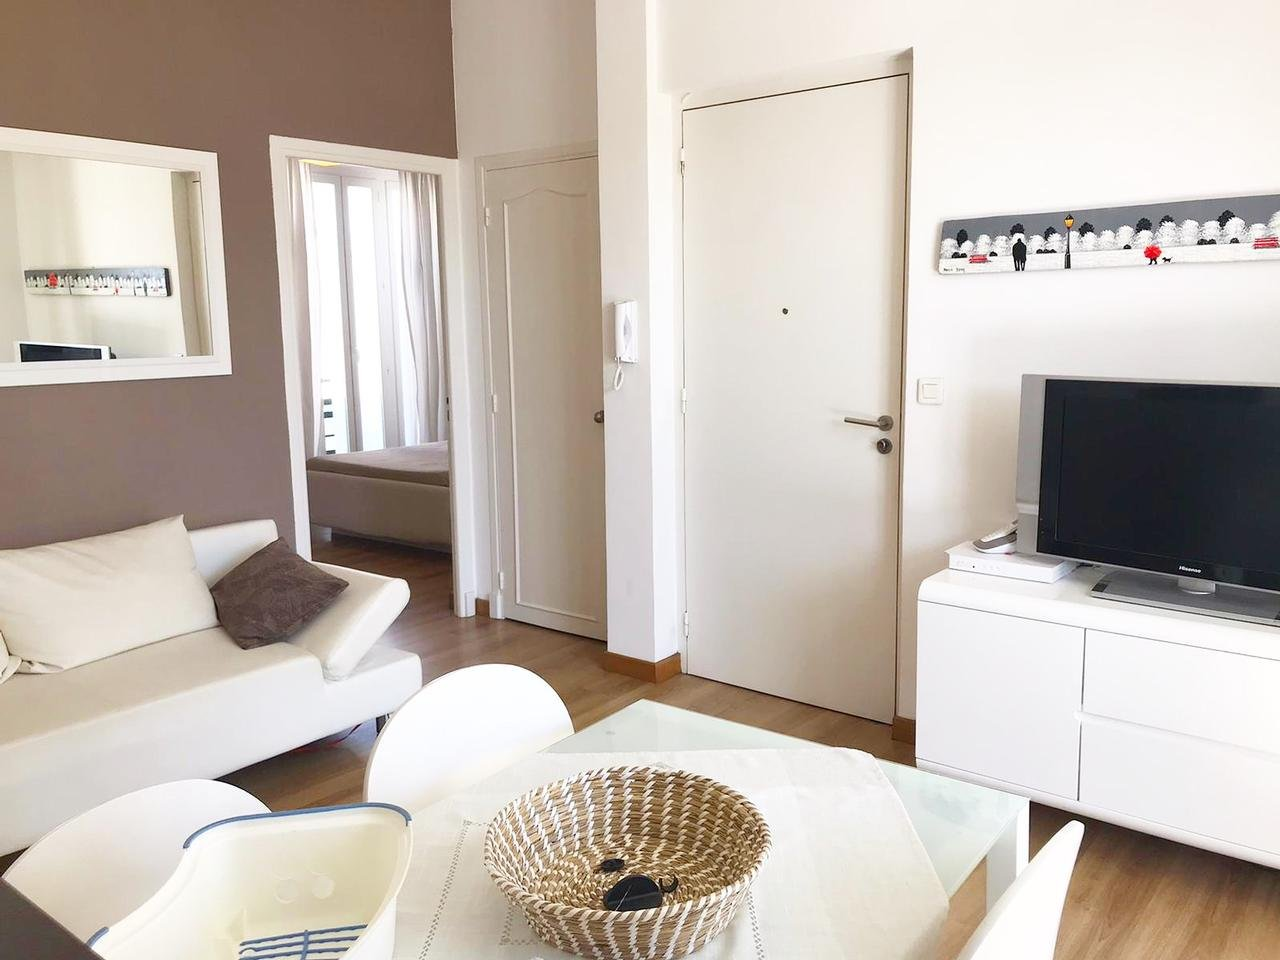 Appartement  2 Rooms 35m2  for sale   450 000 €